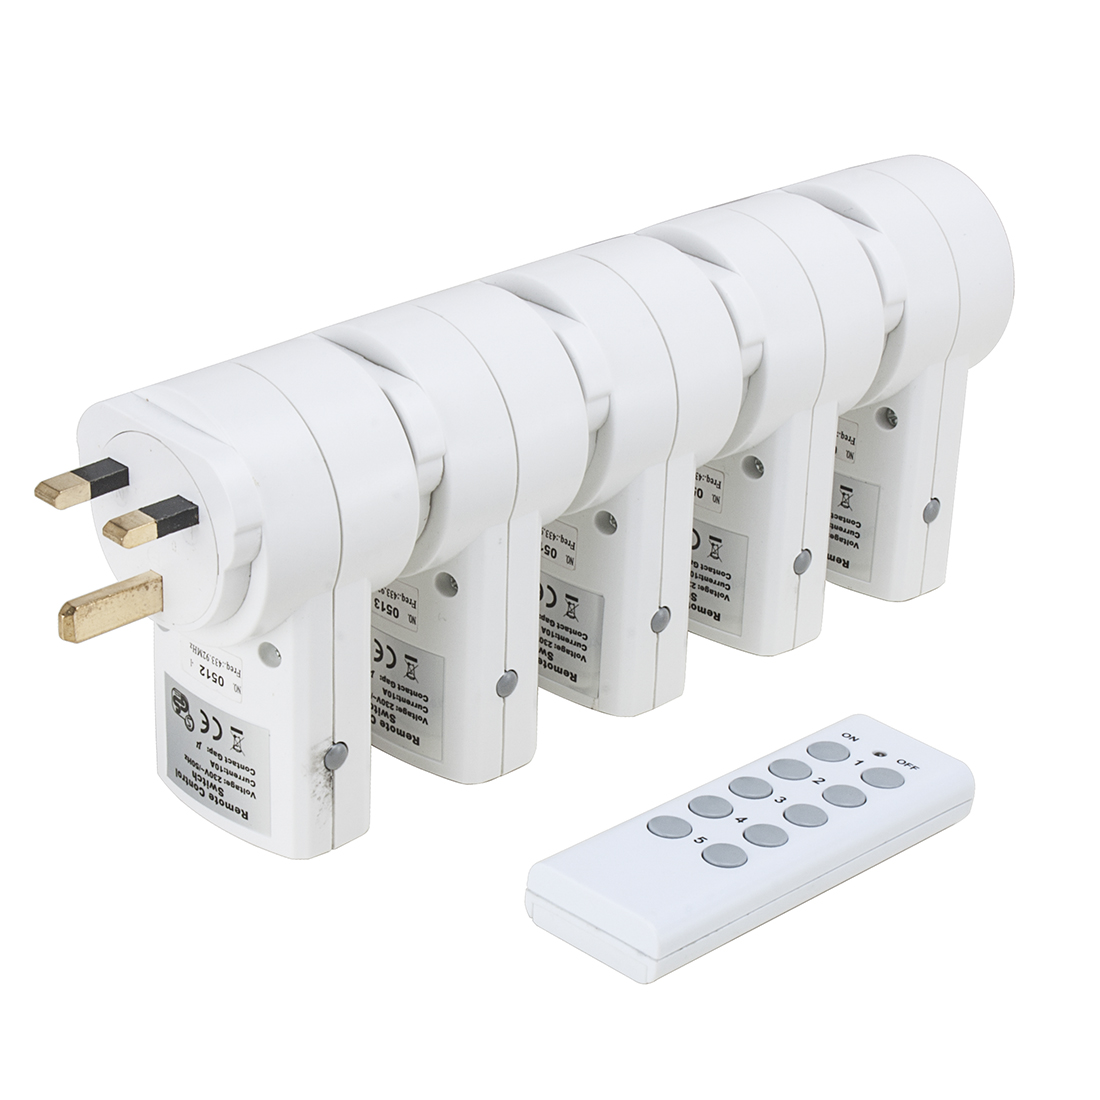 5Pcs AC230V 10A UK Plug Wireless Remote Control UK Socket Outlet w 1 Transmitter - image 4 de 7